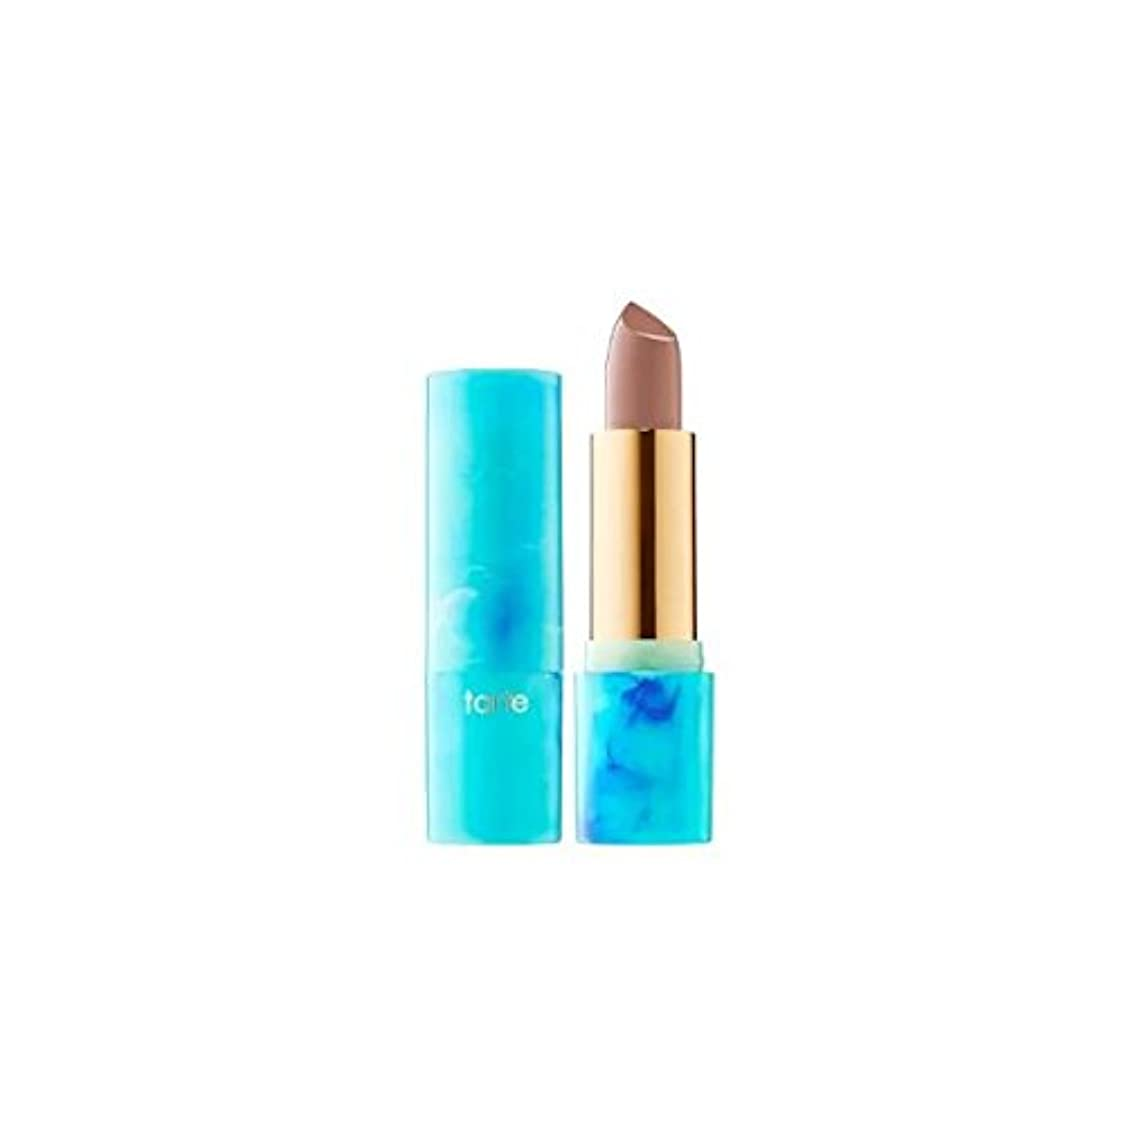 郵便物しつけ近傍tarteタルト リップ Color Splash Lipstick - Rainforest of the Sea Collection Satin finish